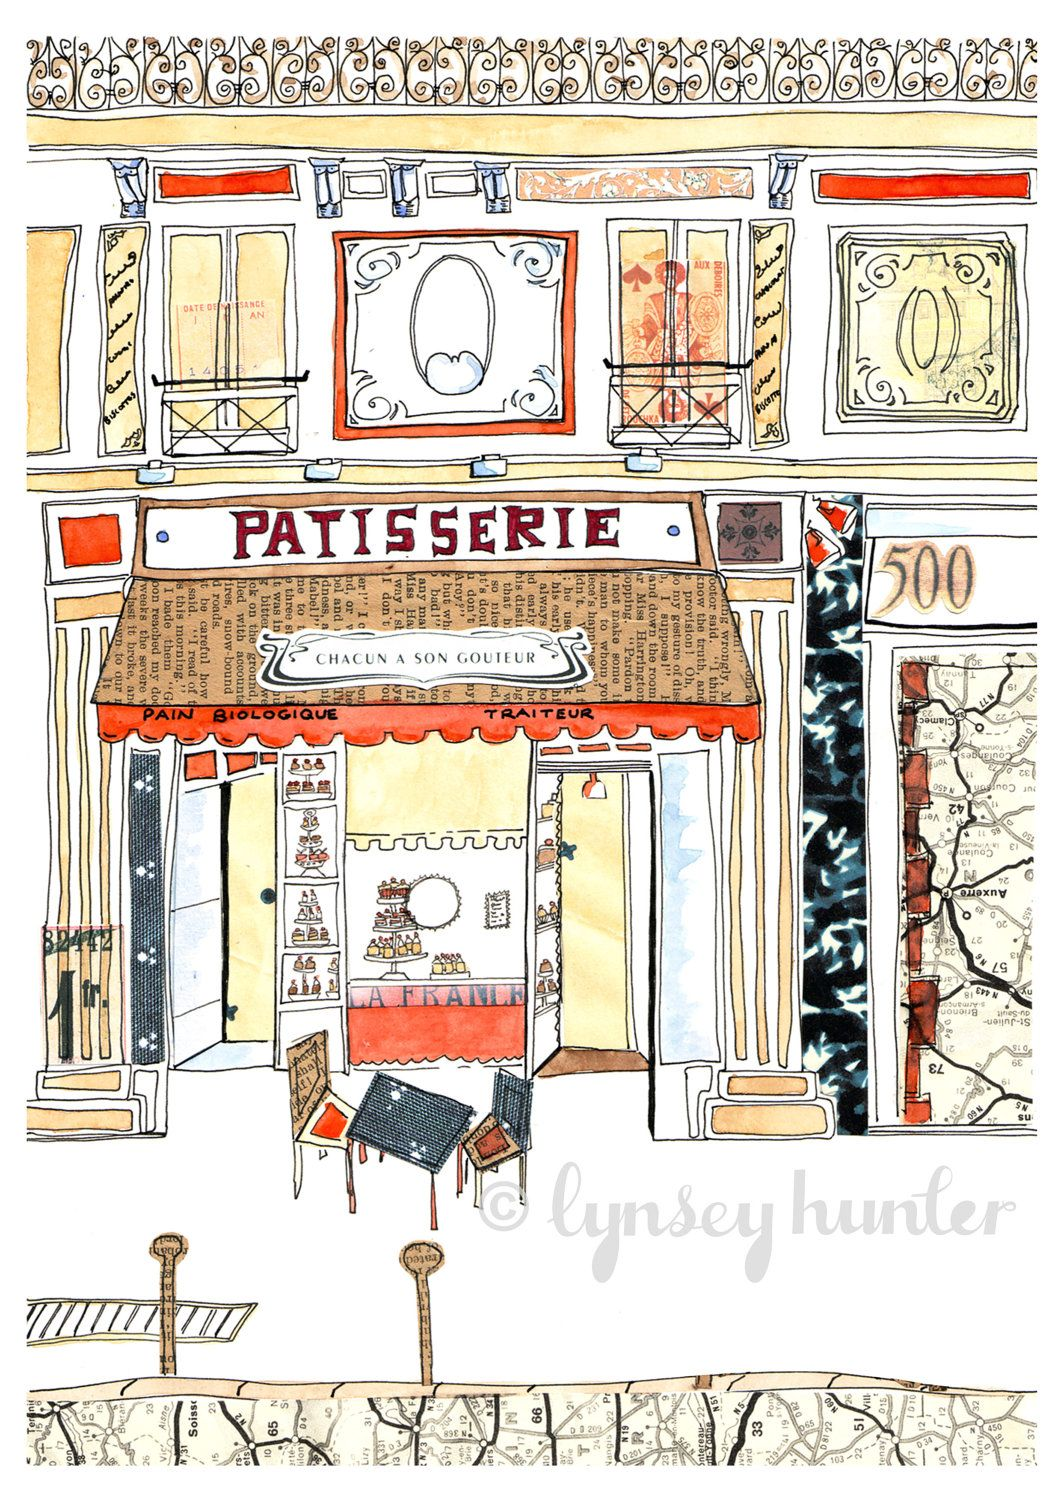 French Patisserie Ink Watercolour And Collage Illustration